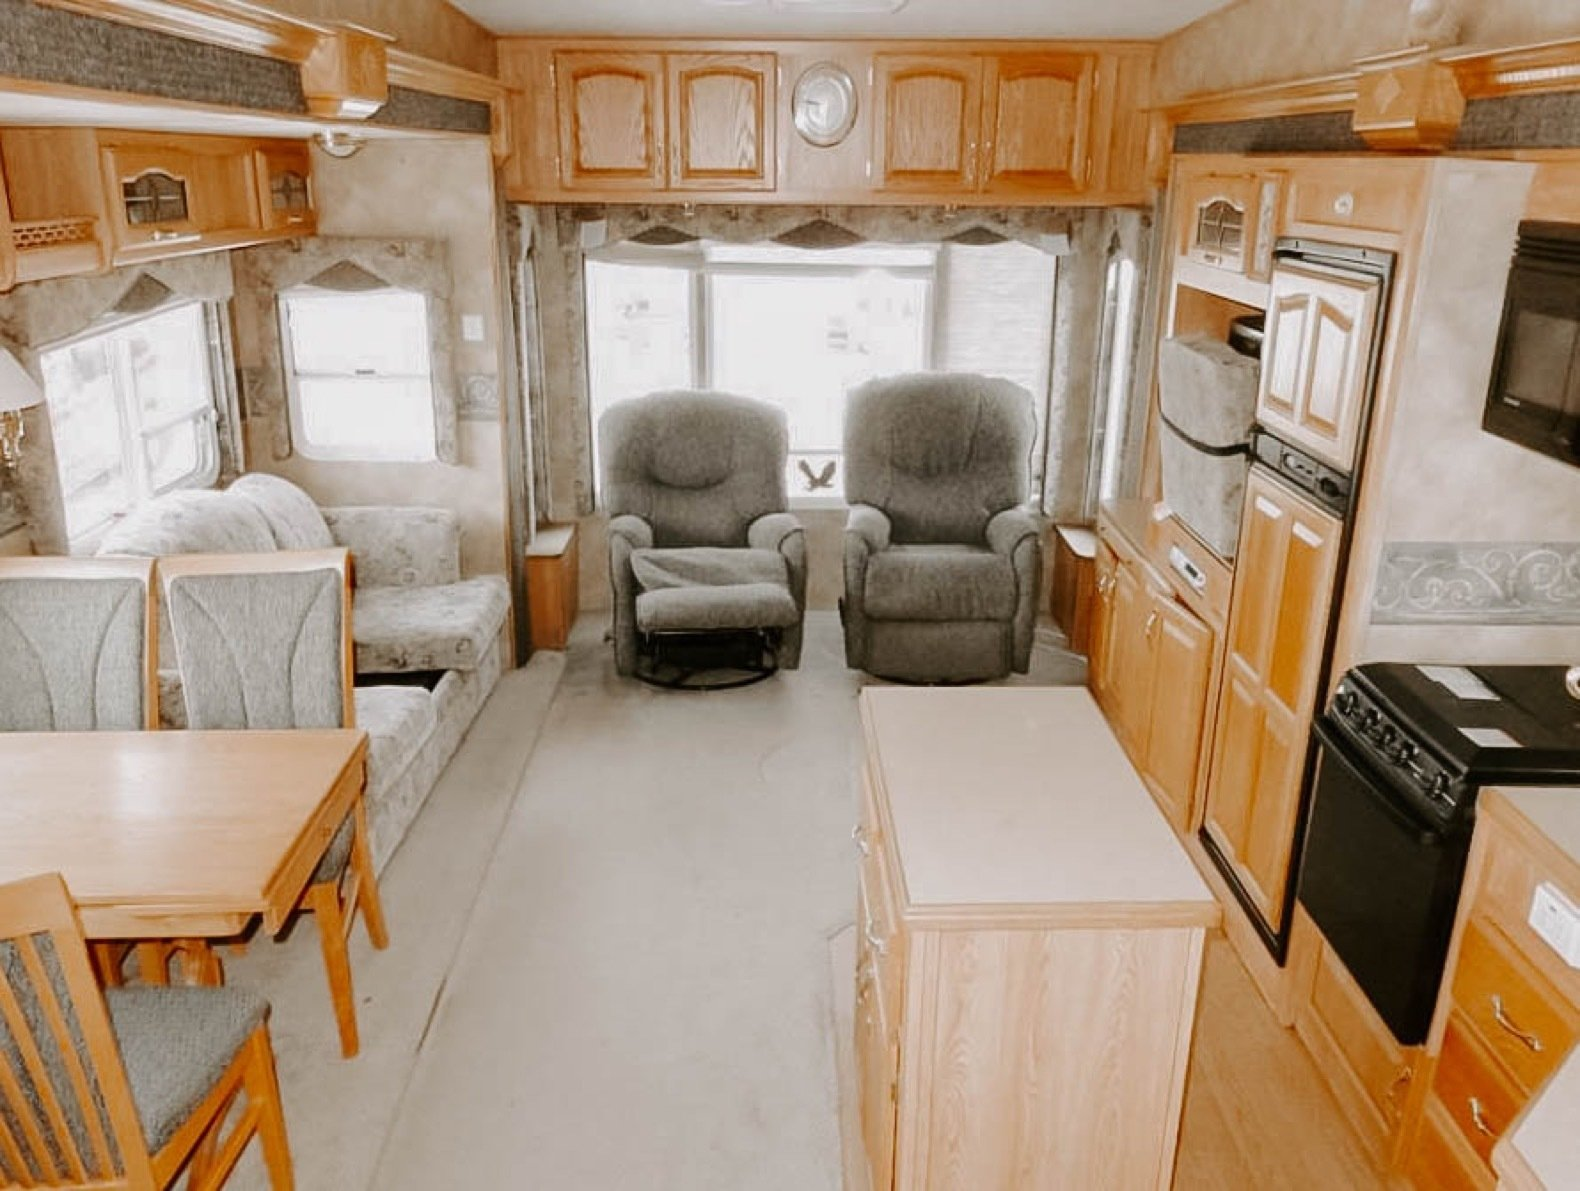 The wood paneling and dark colors made the living space feel small and cramped.    Photo 2 of 25 in Before & After: An Uninspired RV Gets a Cheery Refresh For $5K